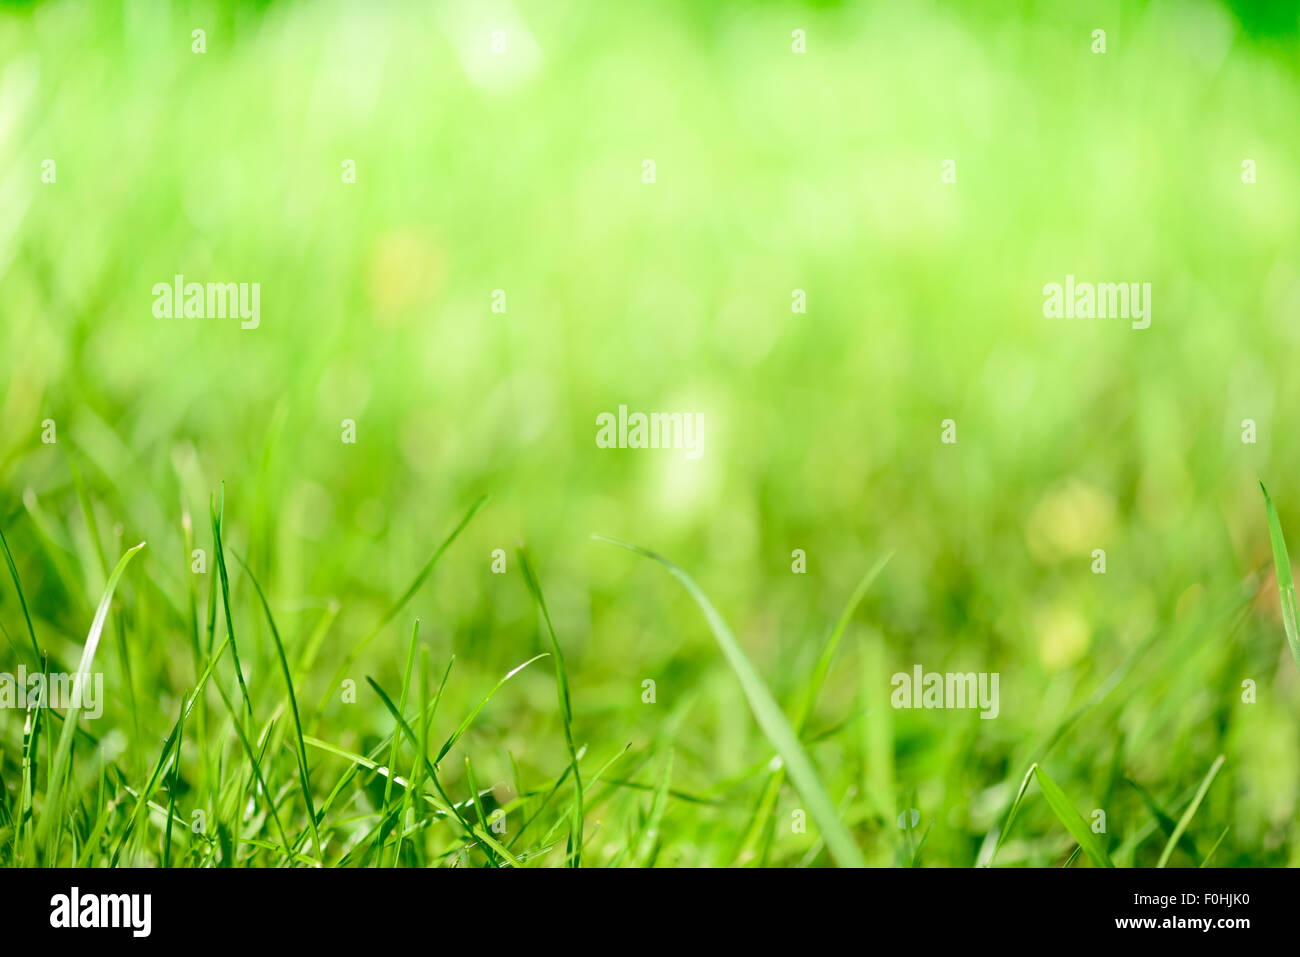 Blurred grass - abstract background, universal use - Stock Image